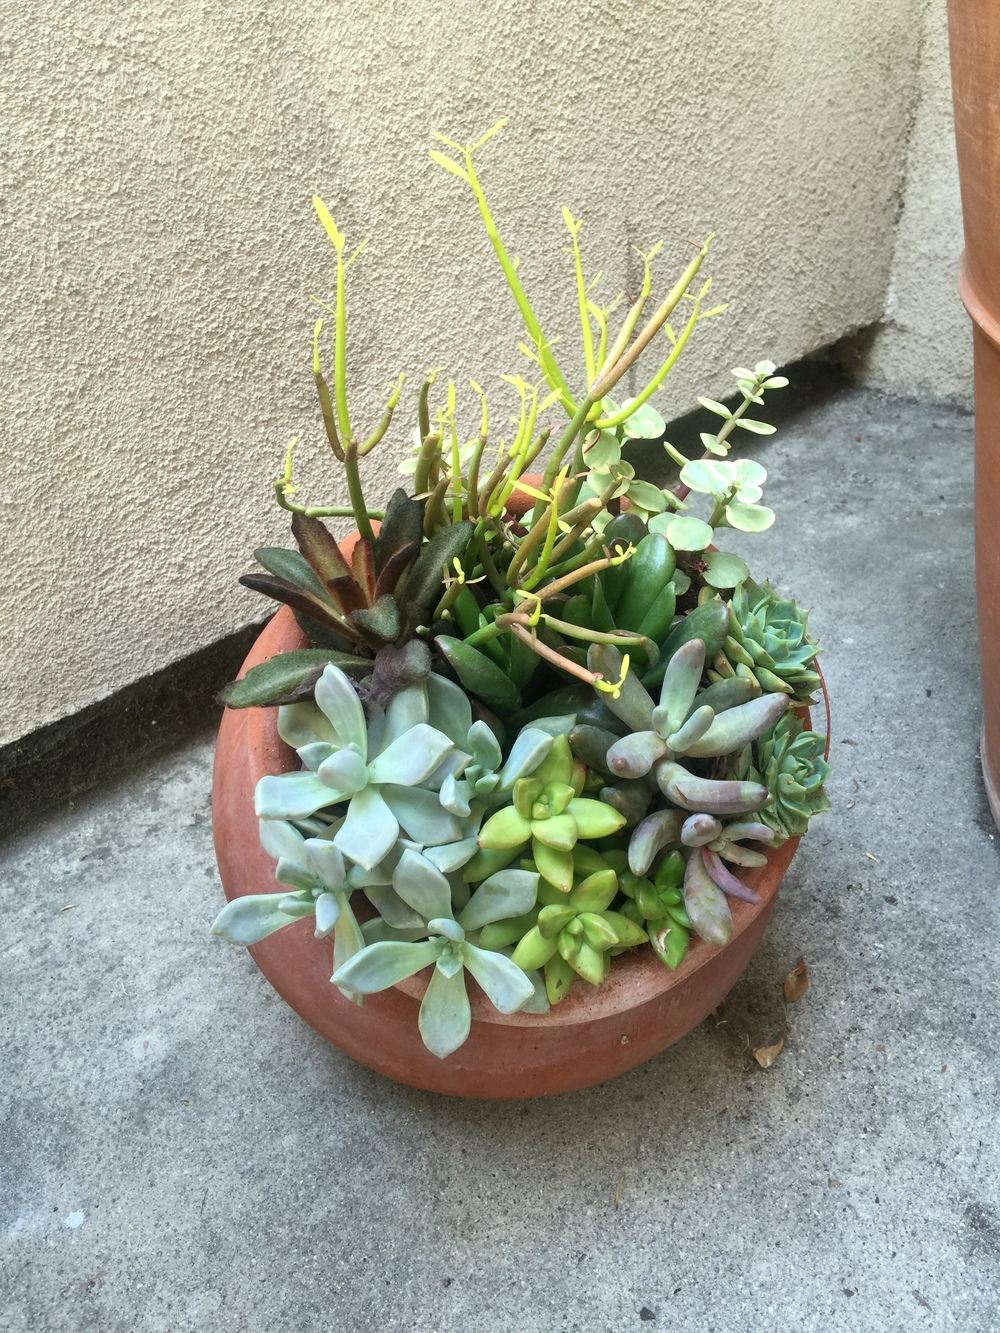 Already planted from Home Depot. But we love the pot and these succulents!